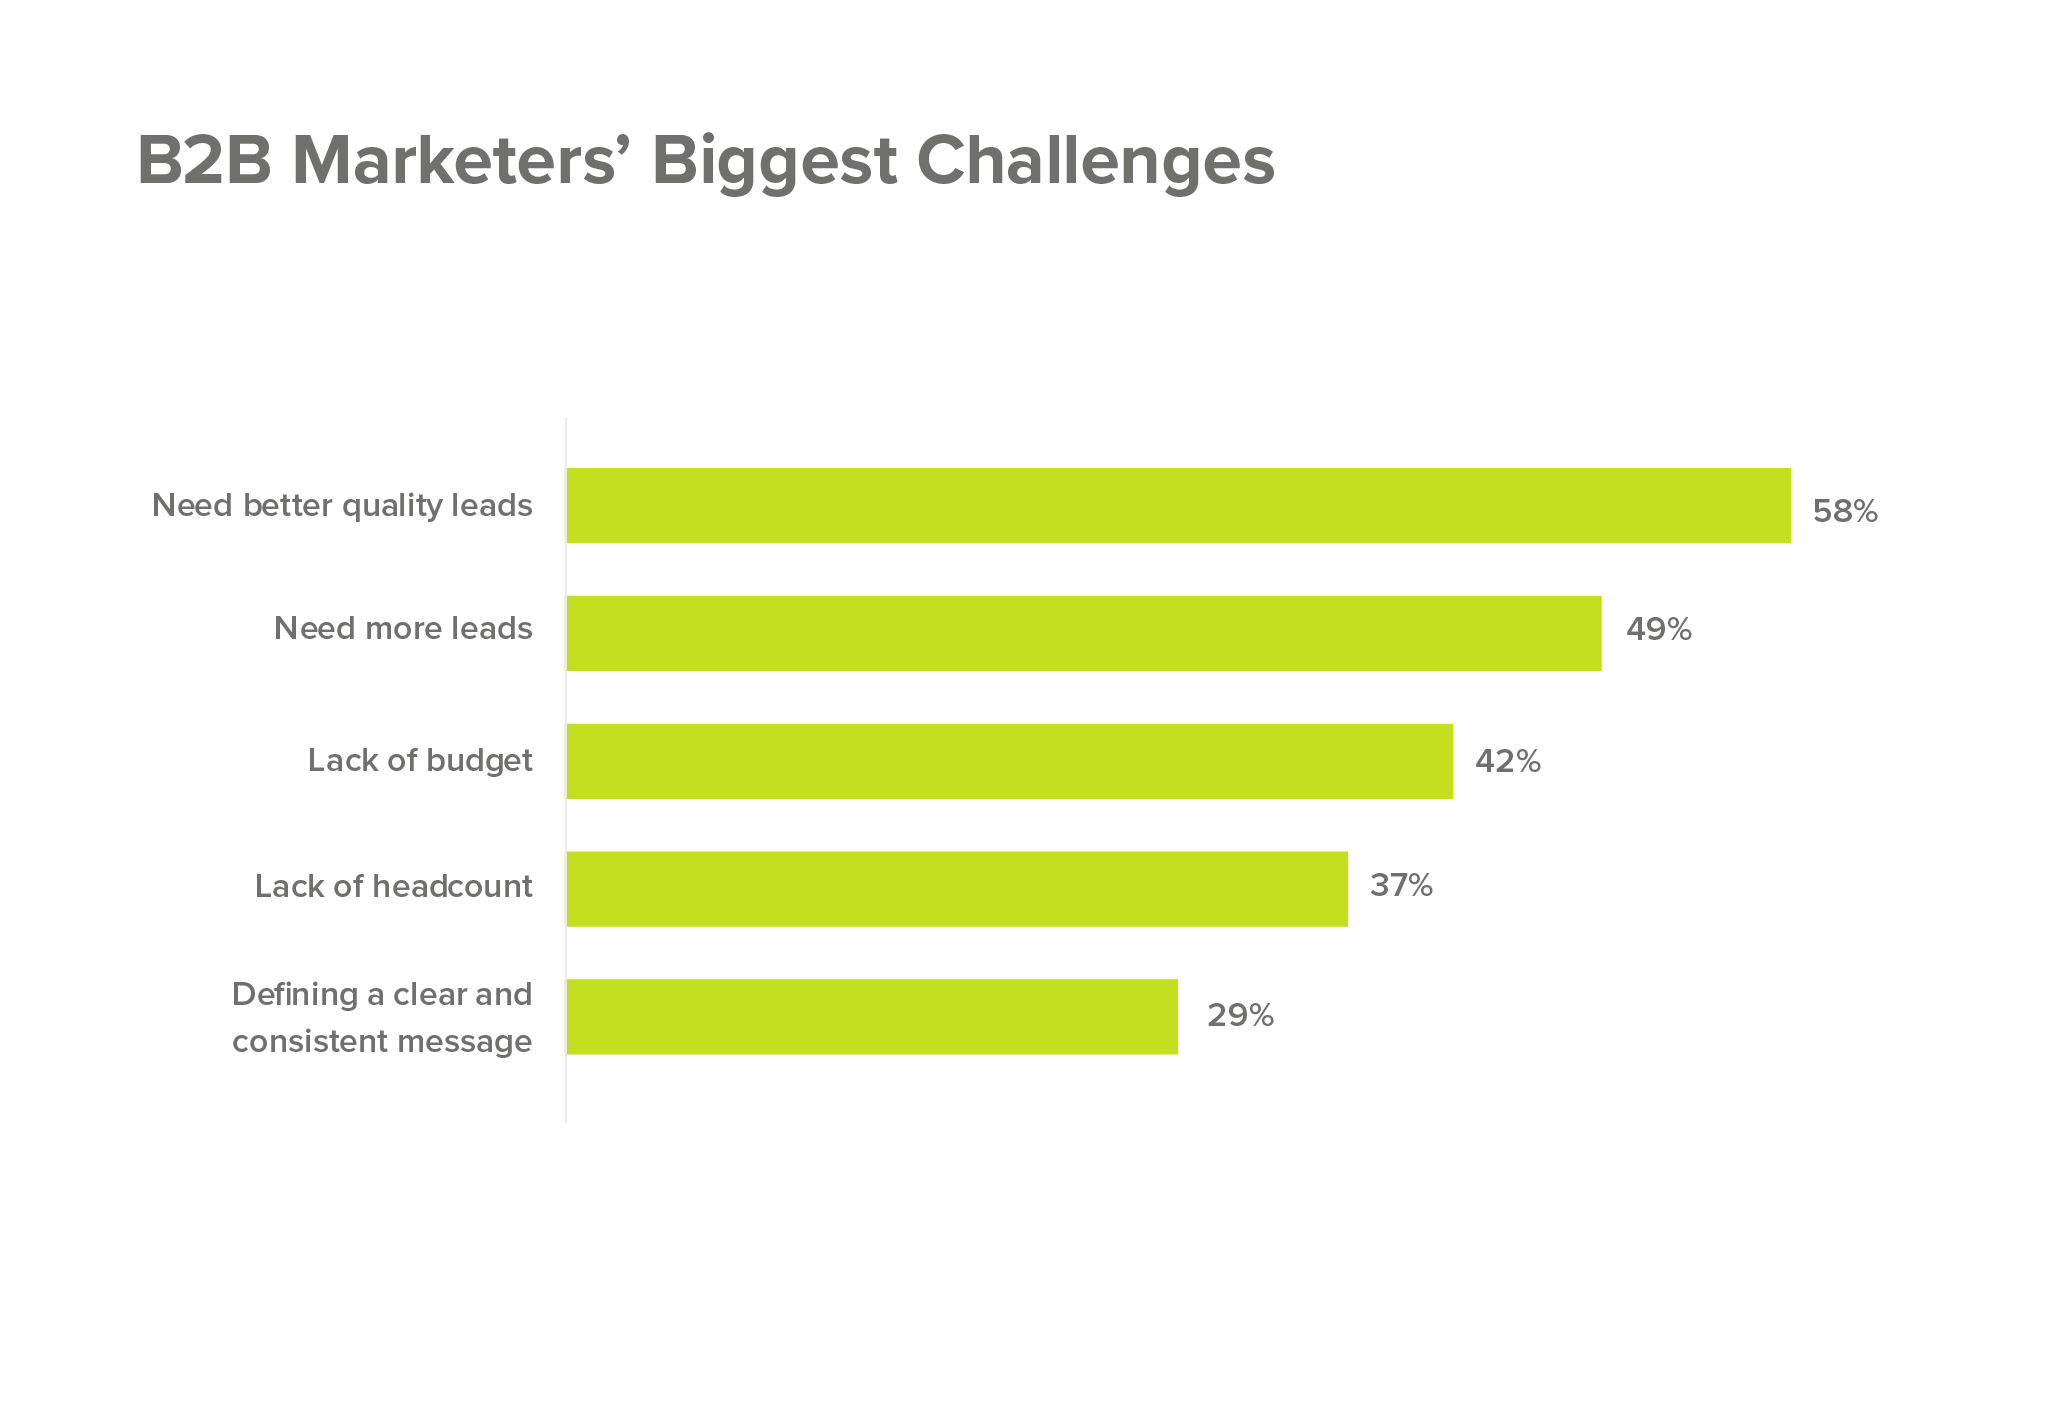 Biggest challenge for B2B marketers